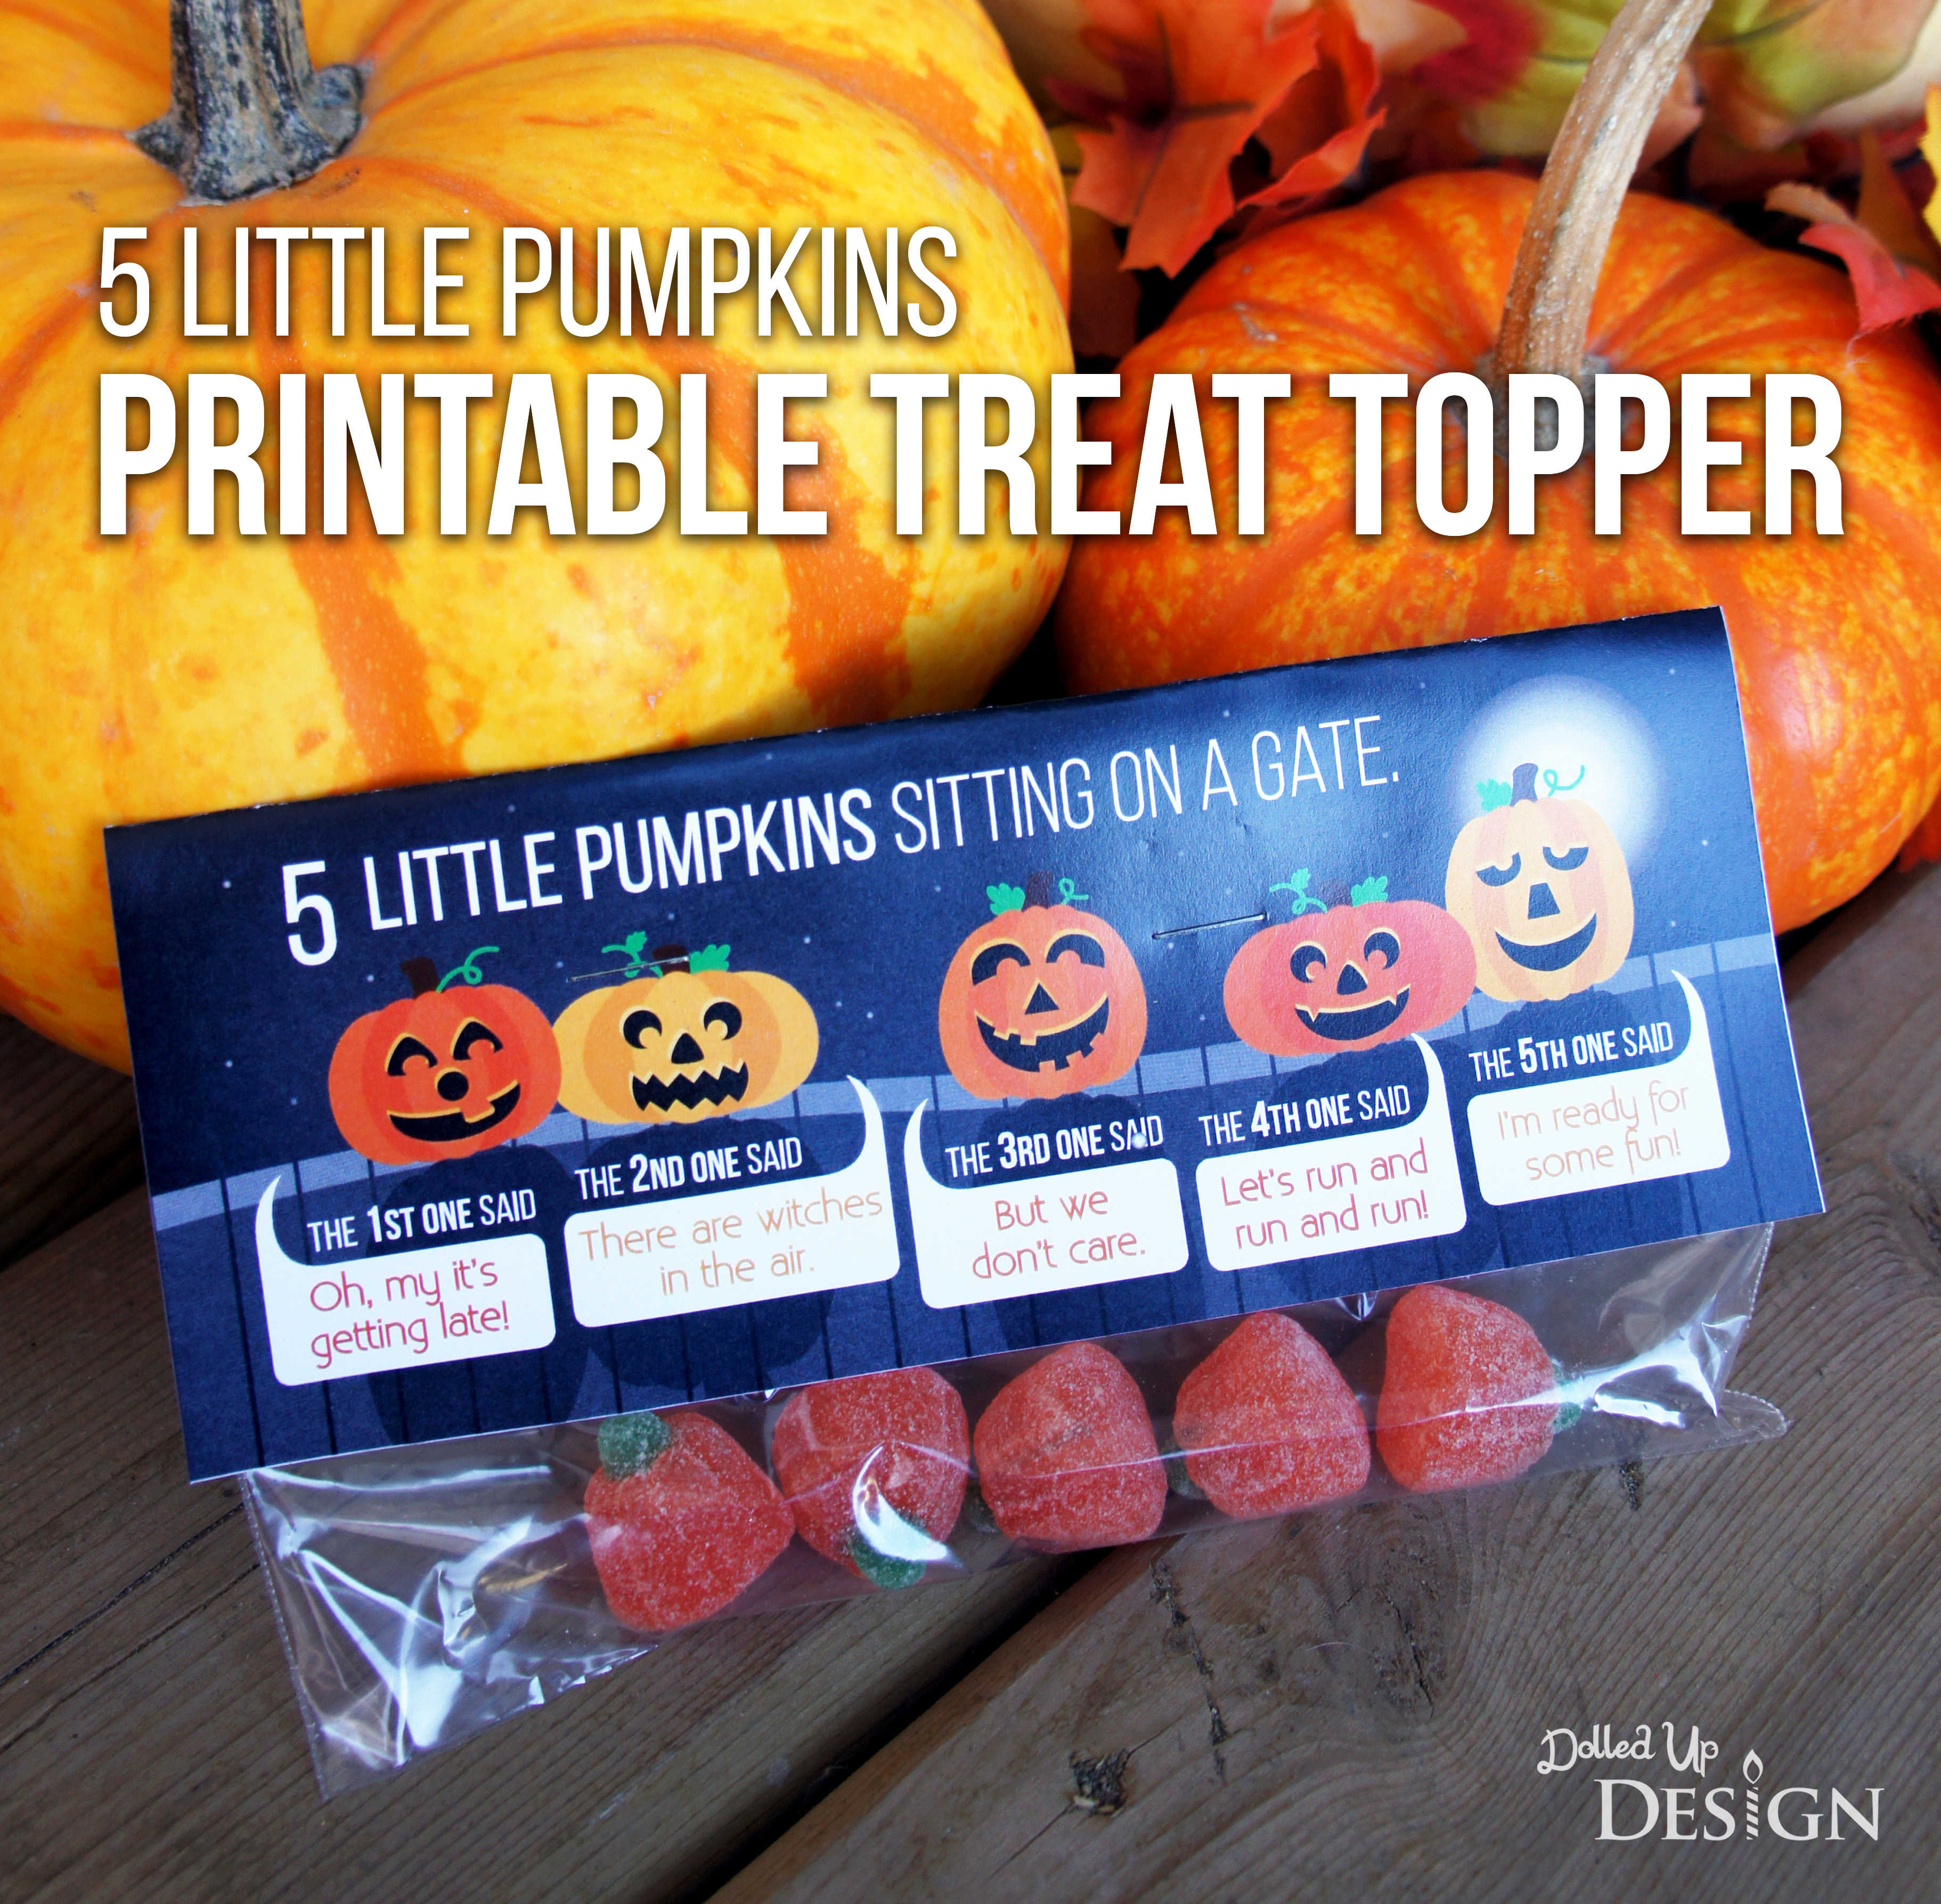 photo regarding Five Little Pumpkins Poem Printable referred to as 5 Very little Pumpkins Printable Take care of Topper